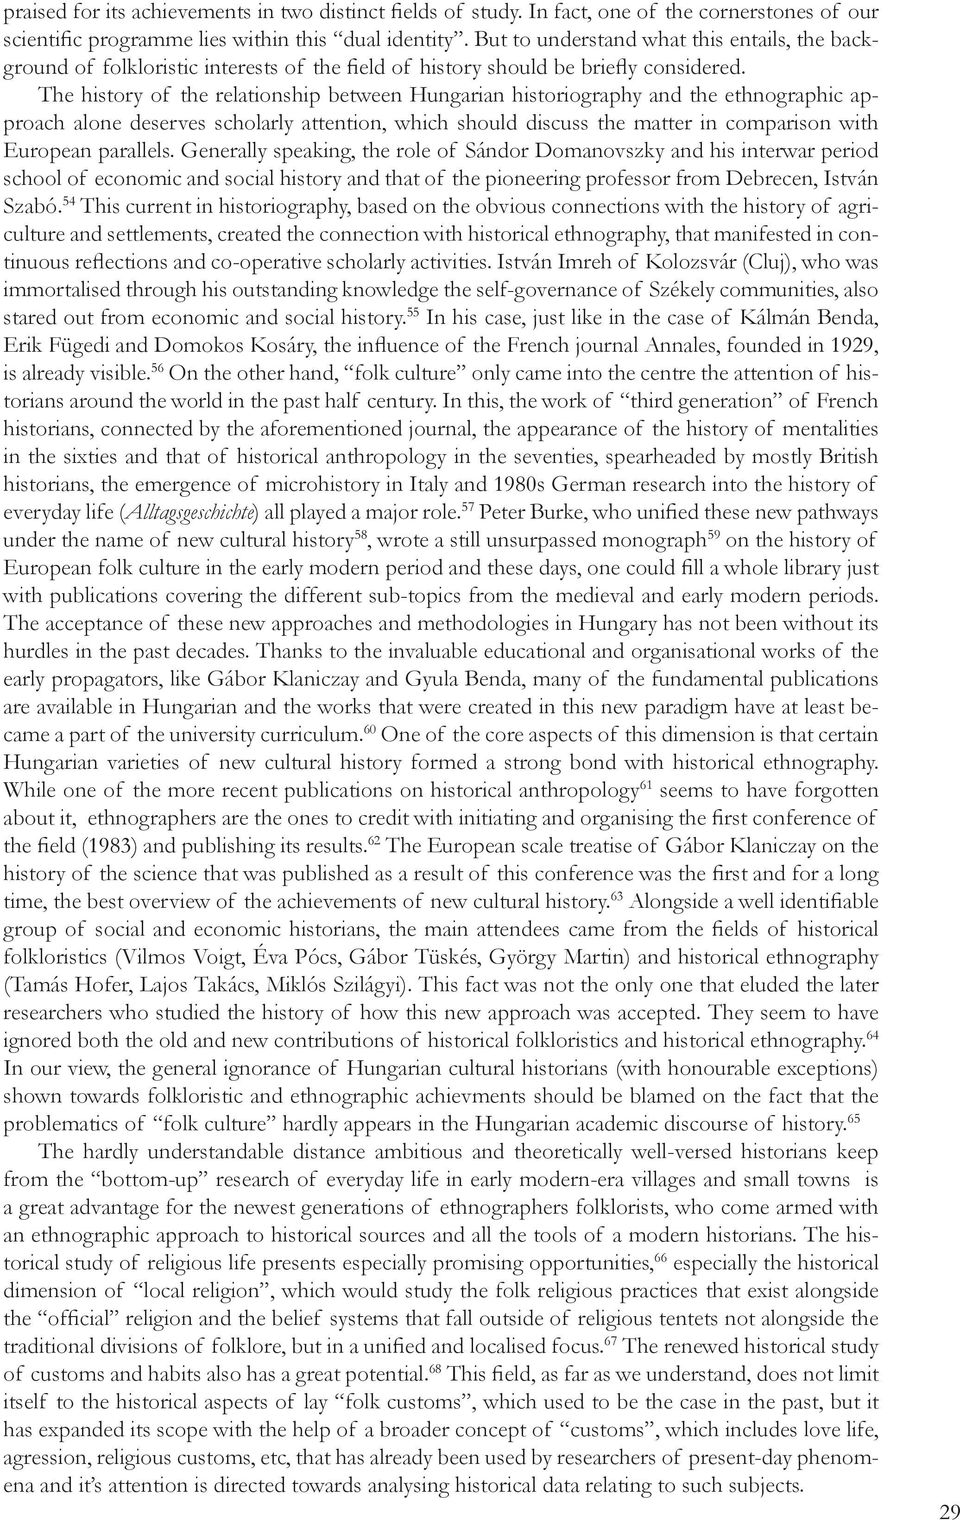 The history of the relationship between Hungarian historiography and the ethnographic approach alone deserves scholarly attention, which should discuss the matter in comparison with European